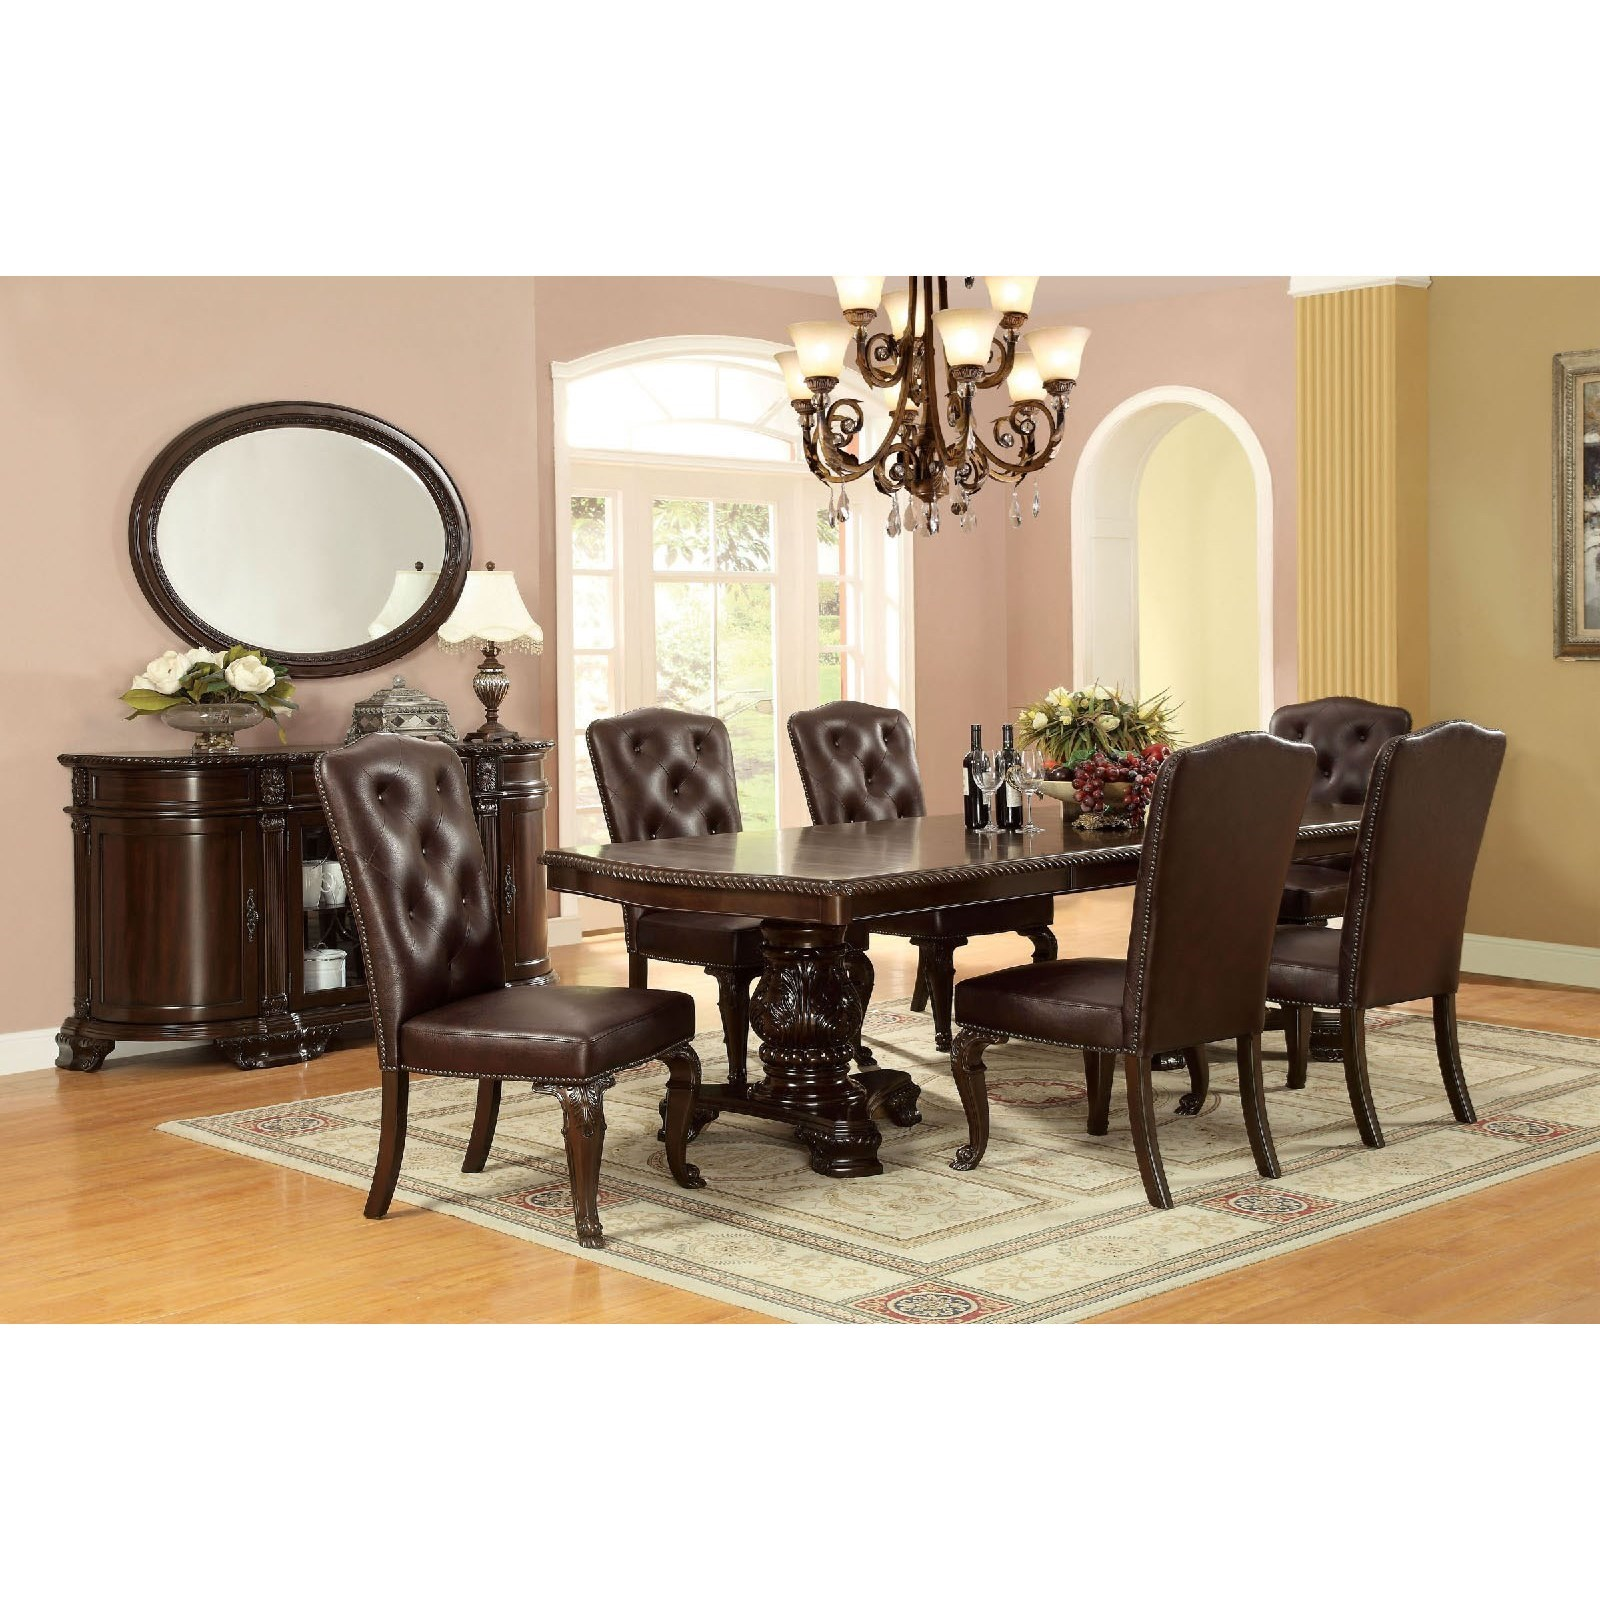 Furniture Of America Bellagio Dining Table Set With Six Chairs